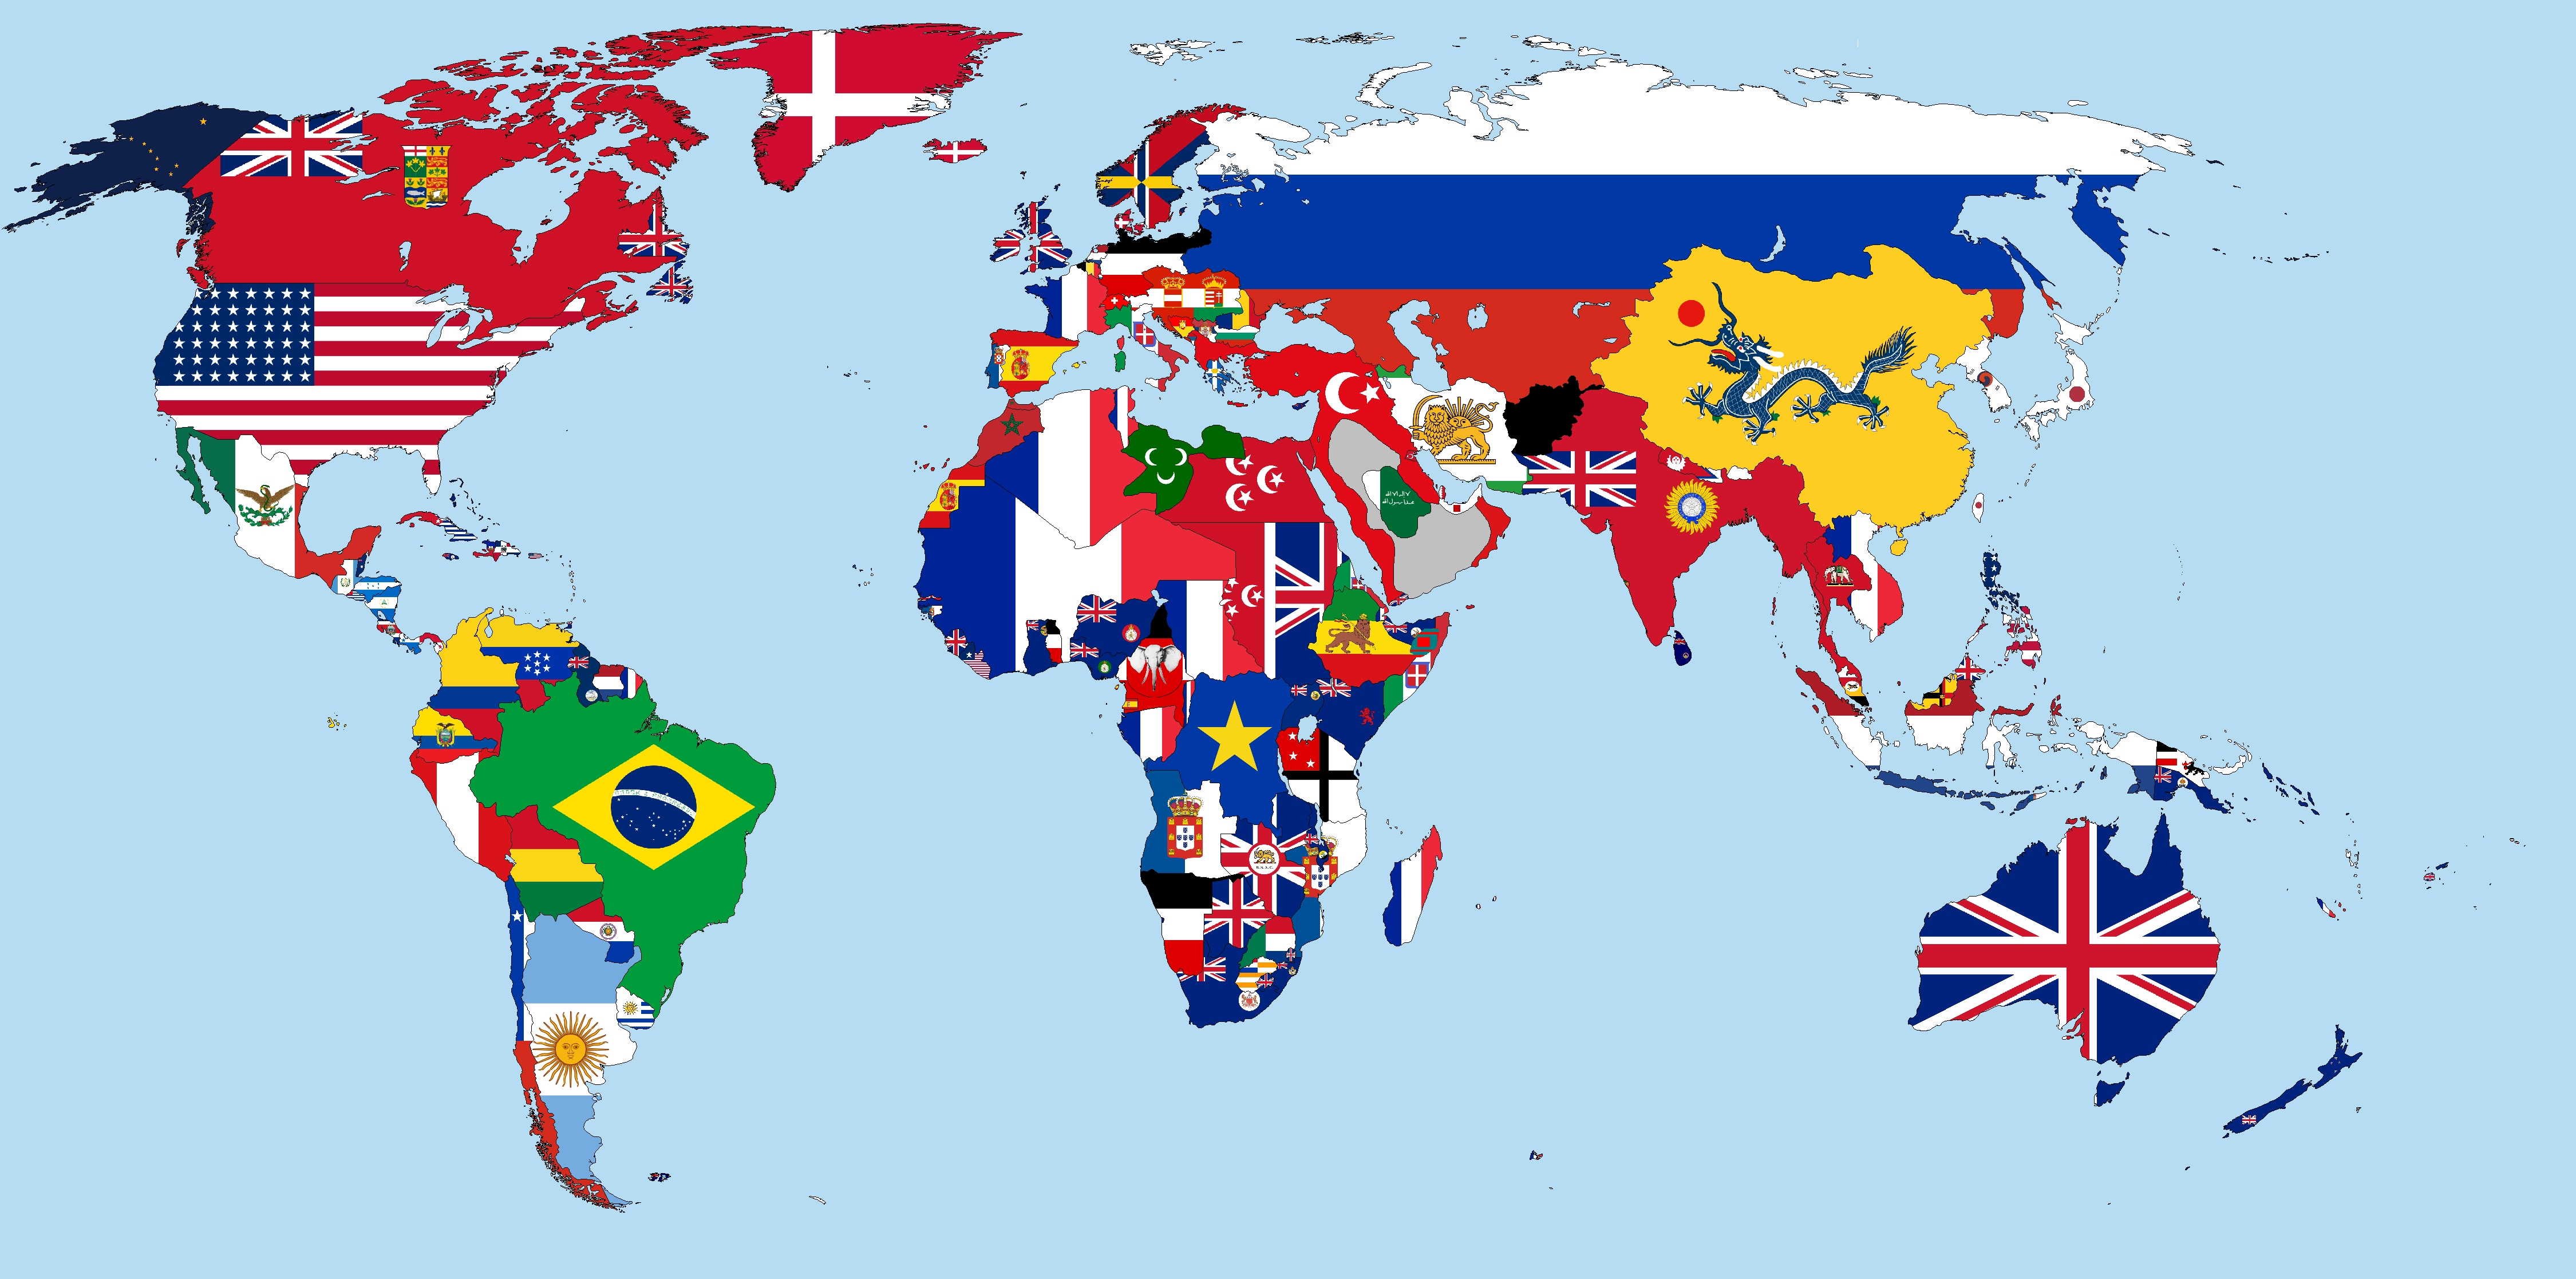 File:Flag-map of the world (1900).png - Wikimedia Commons